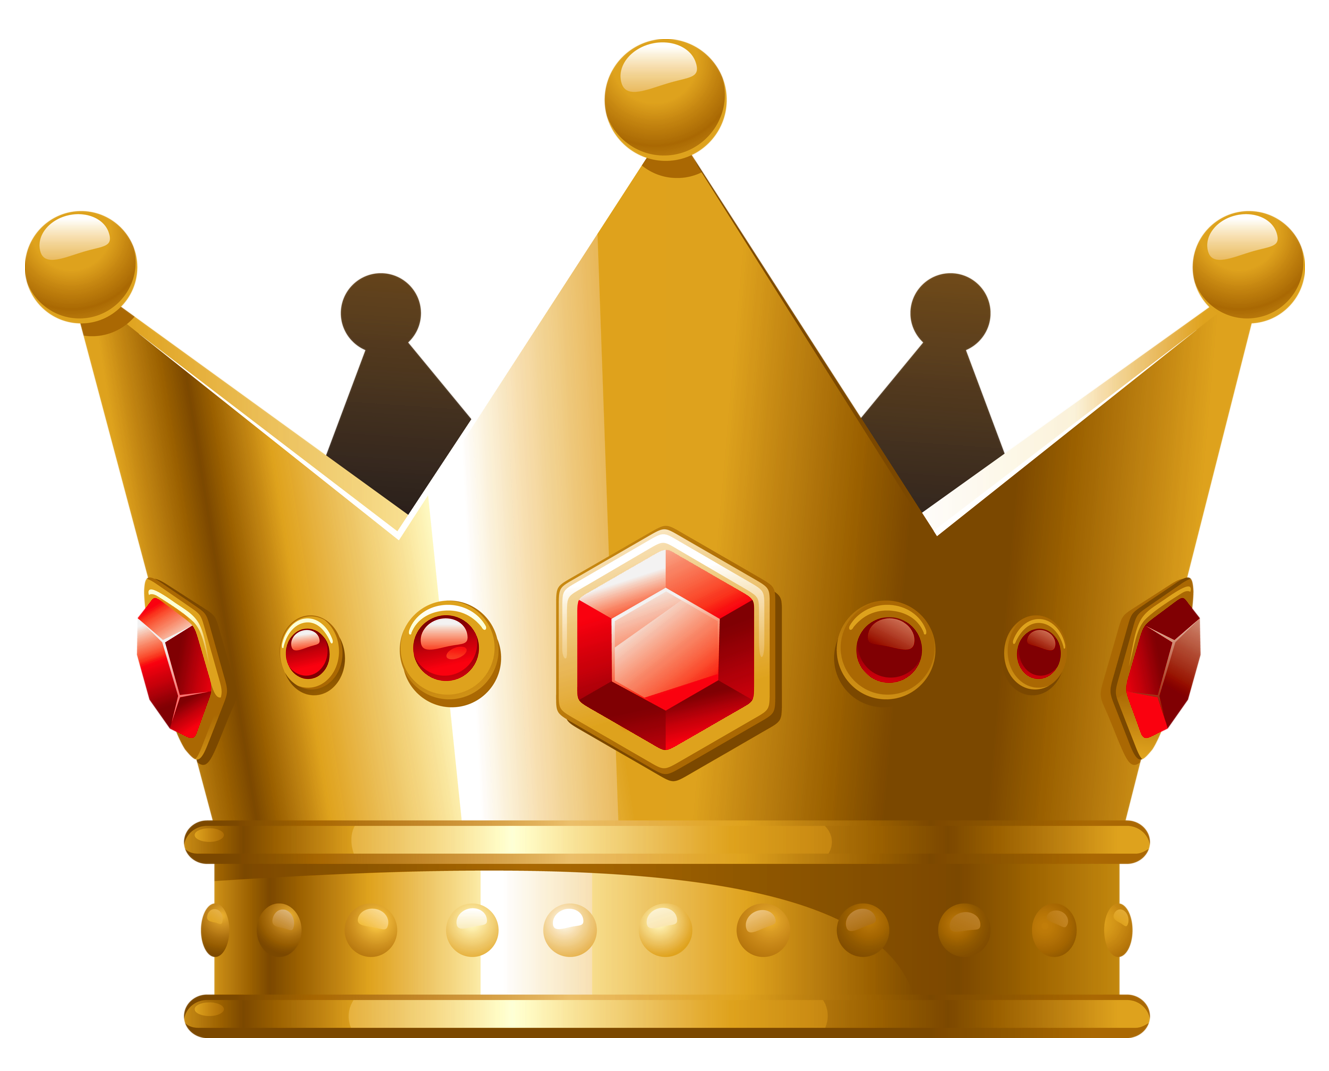 Clipart crown png - ClipartFest picture transparent